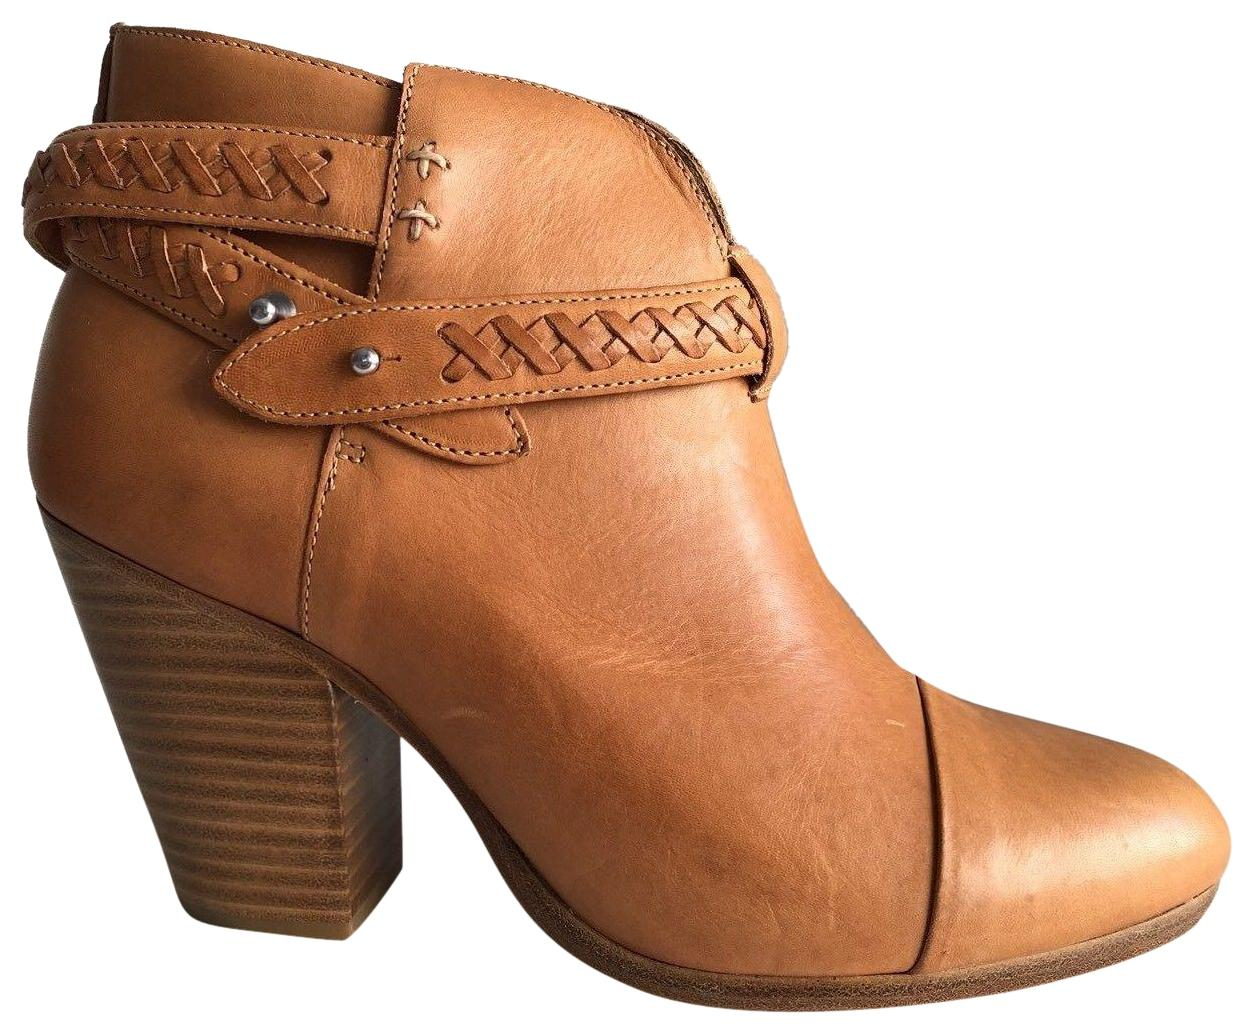 Rag & Leather Bone Natural Harrow Belted Leather & Woven Ankle Boots/Booties Size EU 39 (Approx. US 9) Regular (M, B) 407876